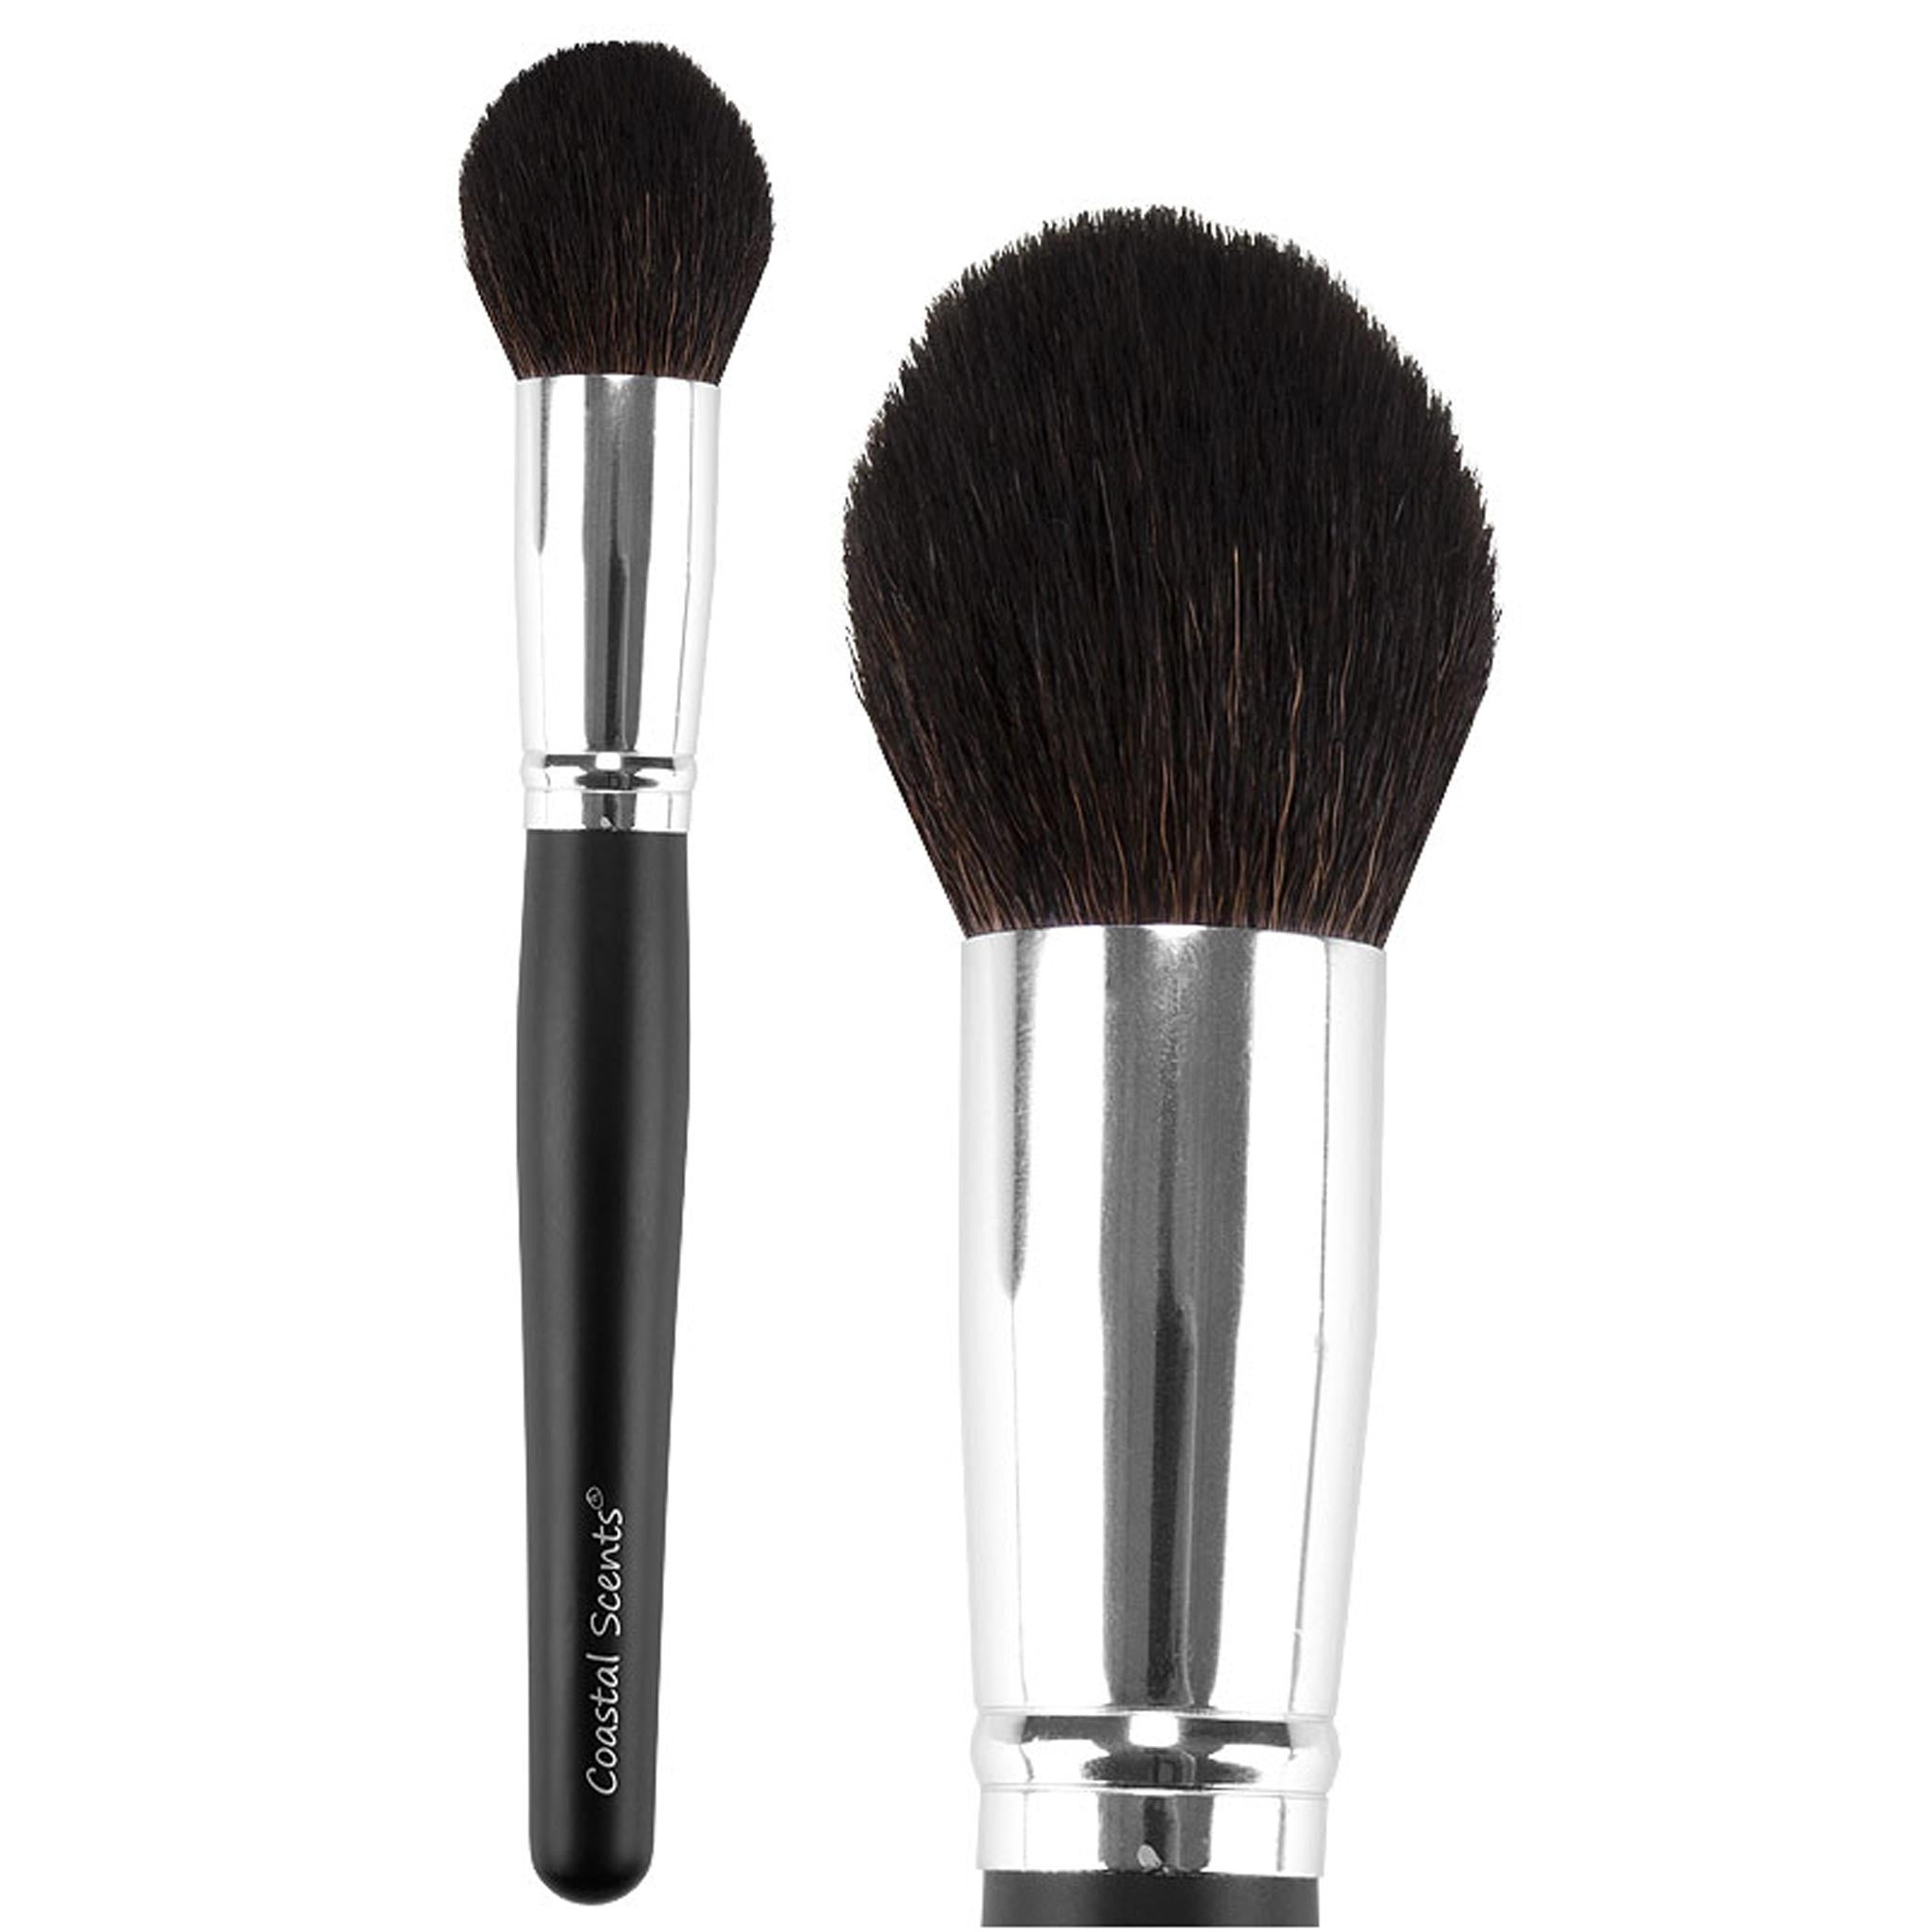 Coastal Scents coupon: Classic Medium Tapered Powder Brush Natural